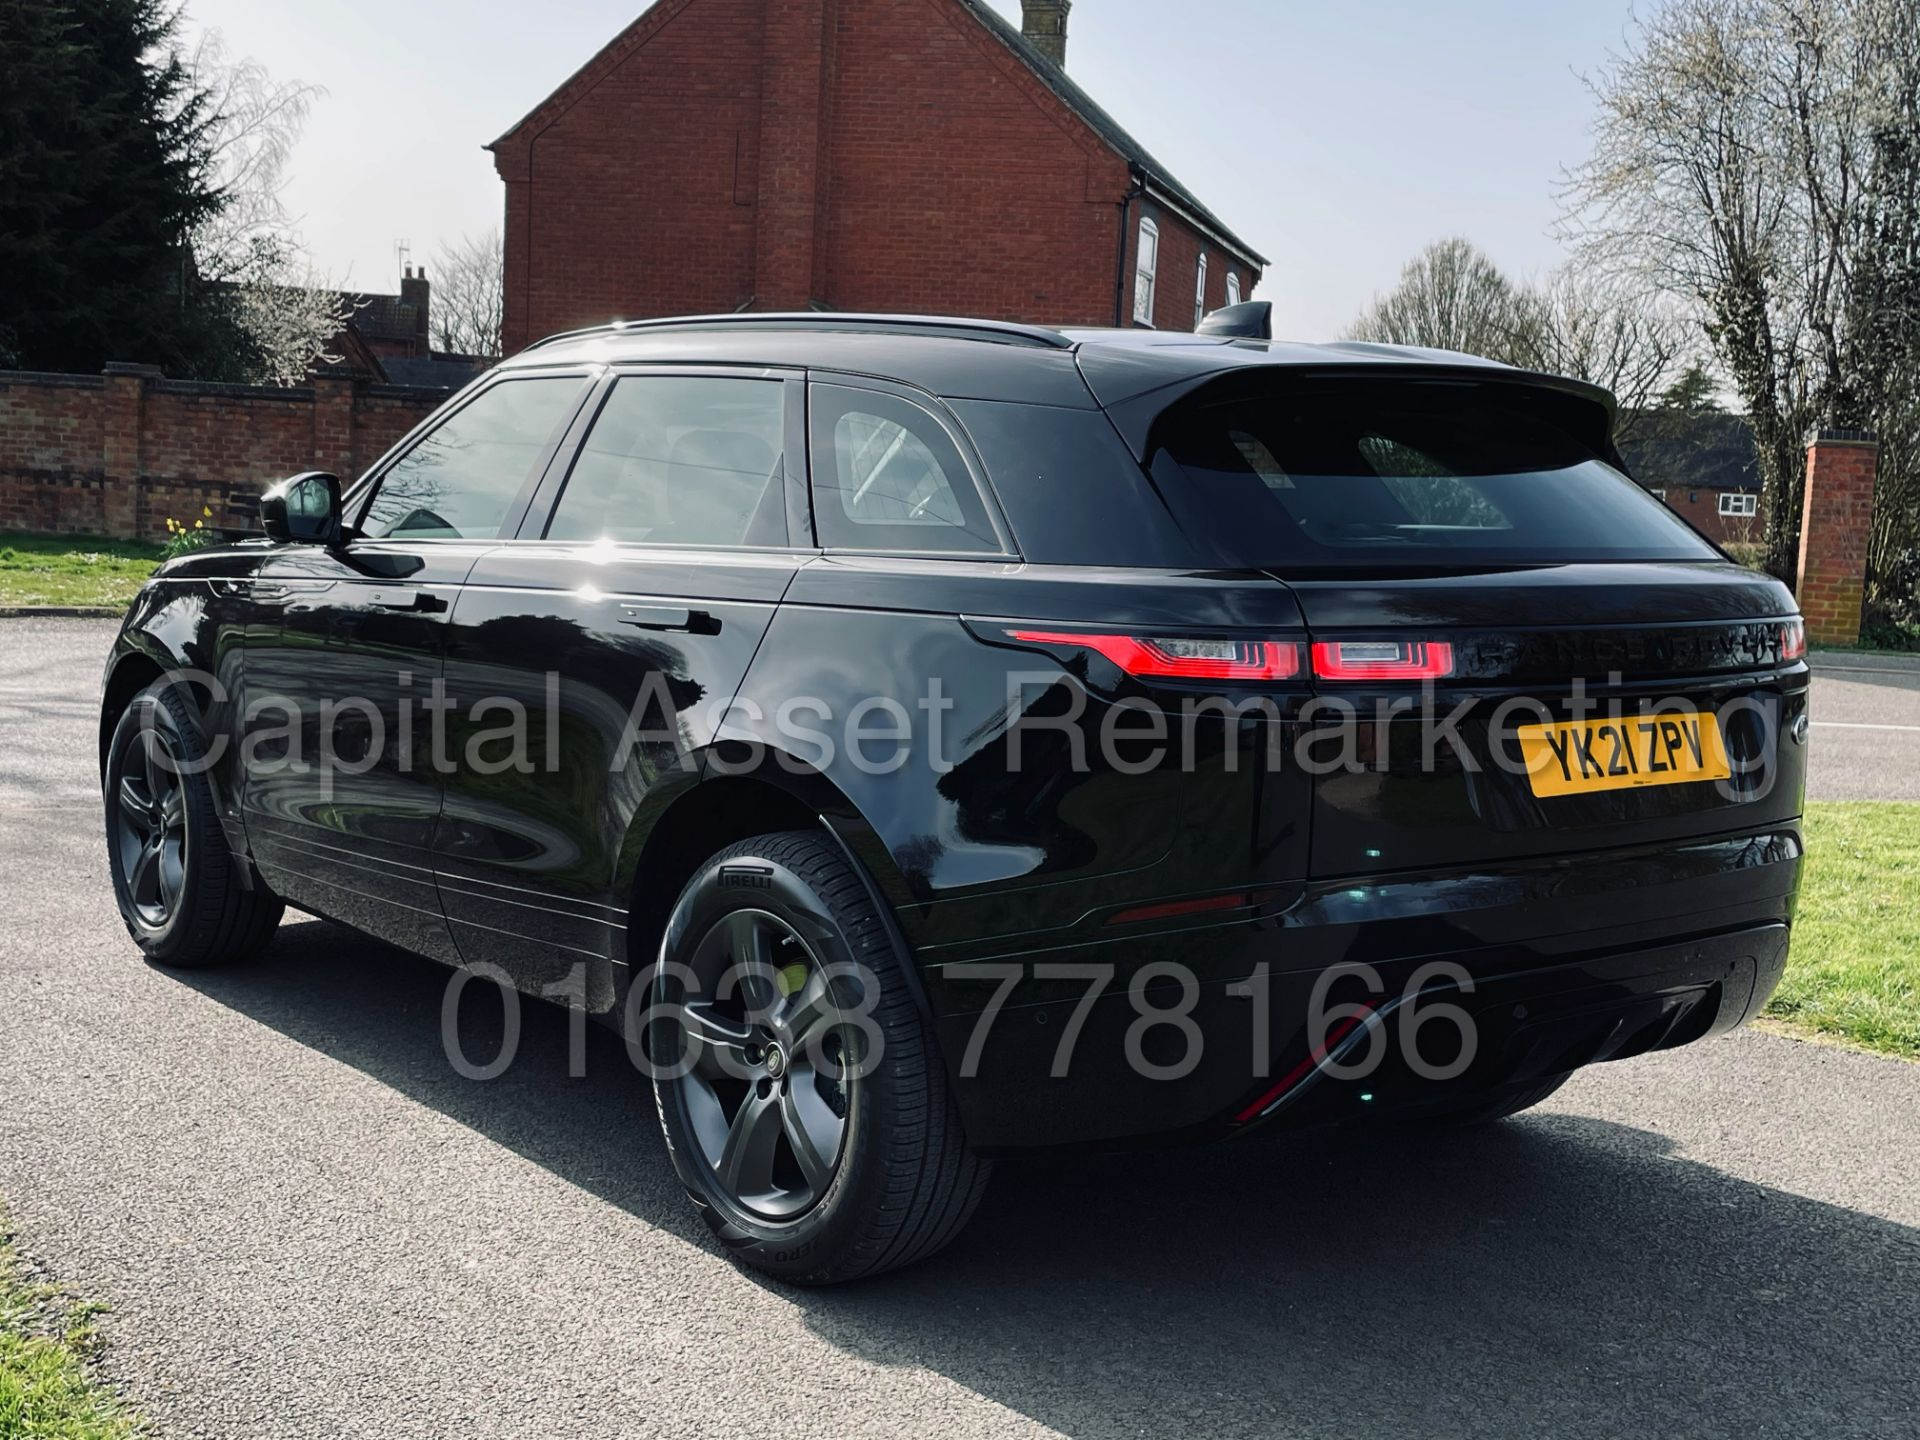 (On Sale) RANGE ROVER VELAR *R-DYNAMIC* SUV (2021) *8 SPEED AUTO - LEATHER* (DELIVERY MILES) - Image 10 of 50